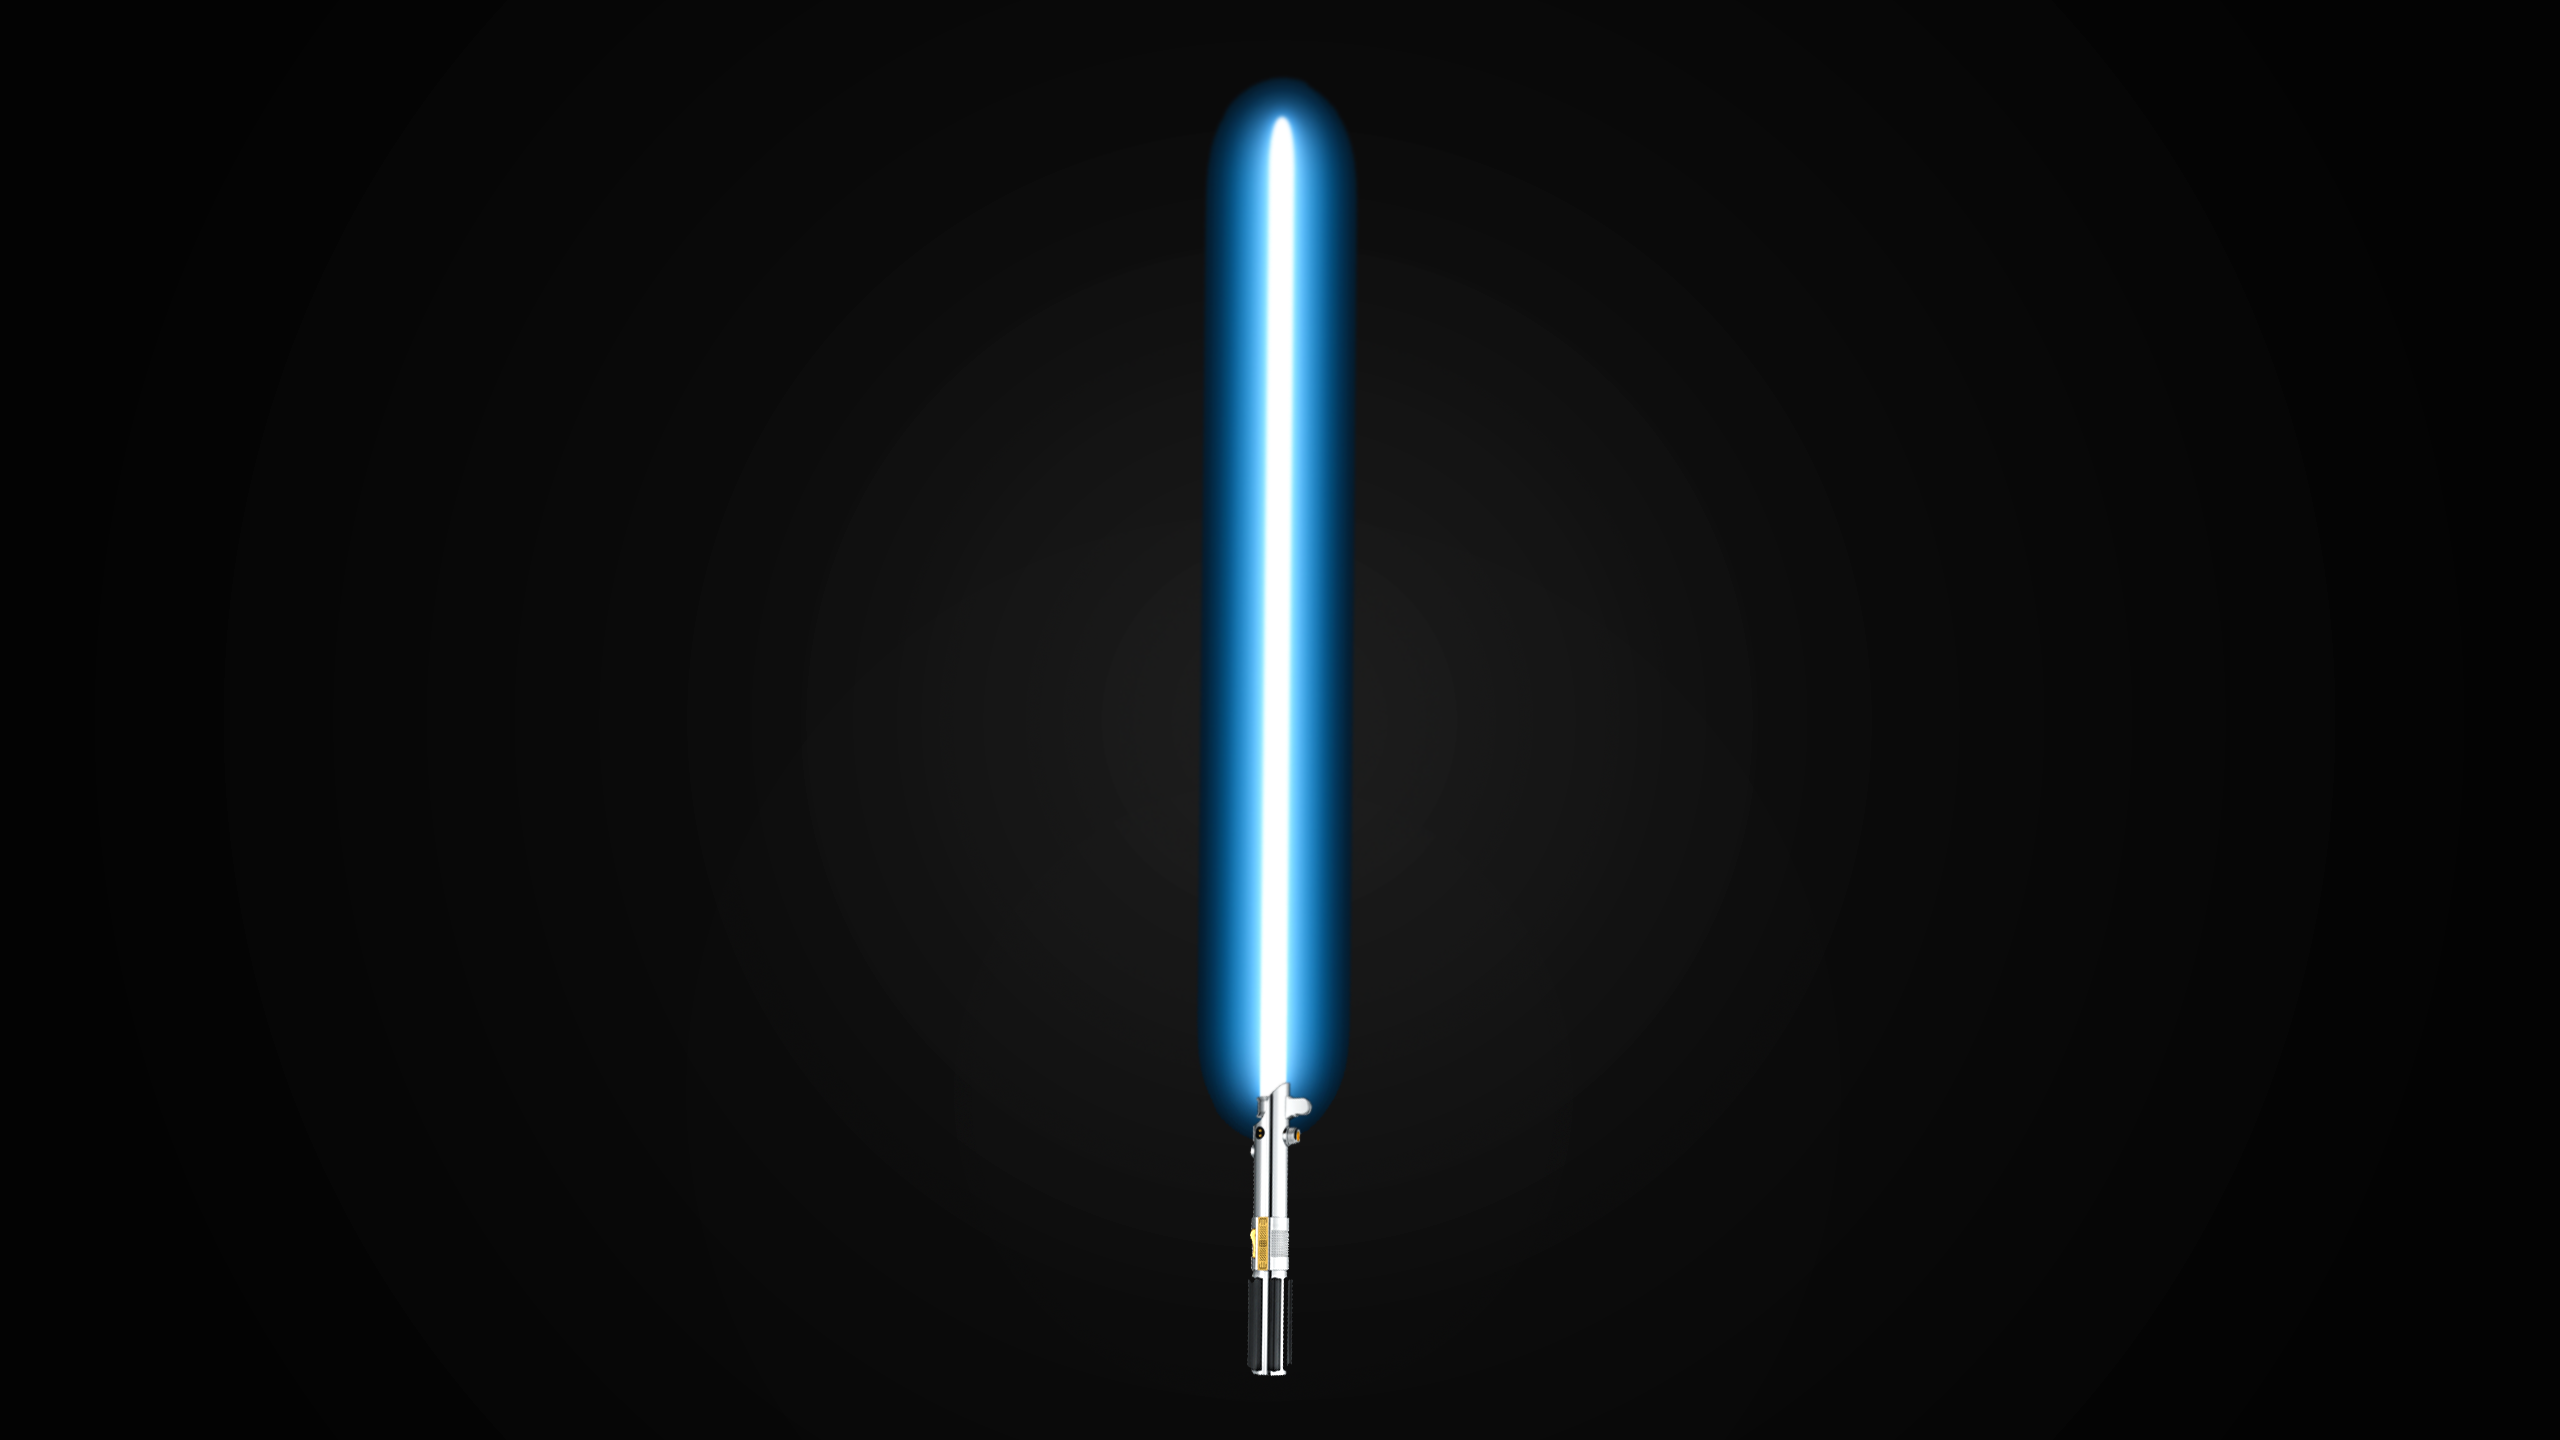 this is a simple but elegant wallpaper with the single lightsaber in 2560x1440